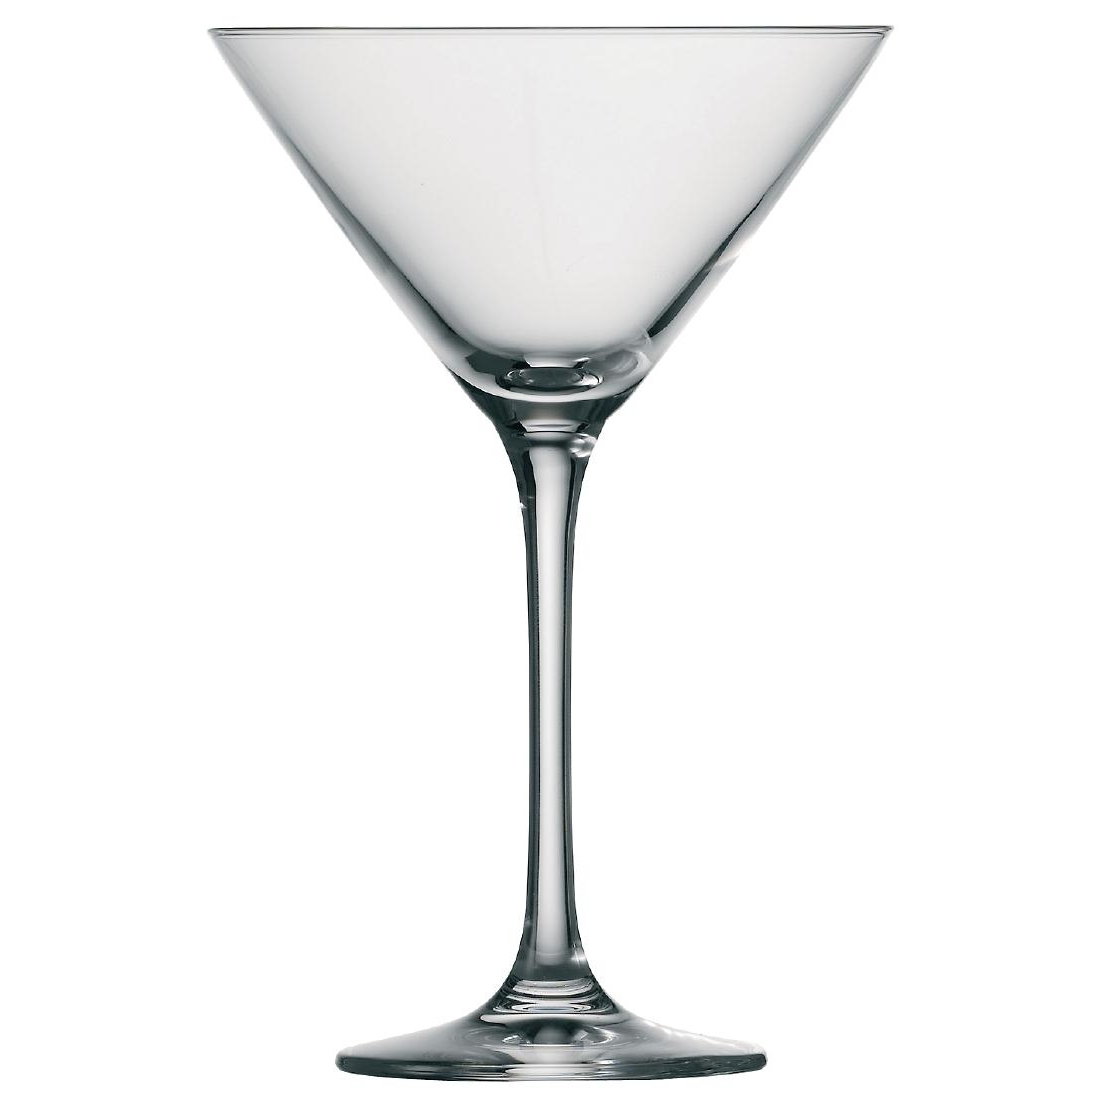 Schott Zwiesel Classico Crystal Martini Glasses 270ml